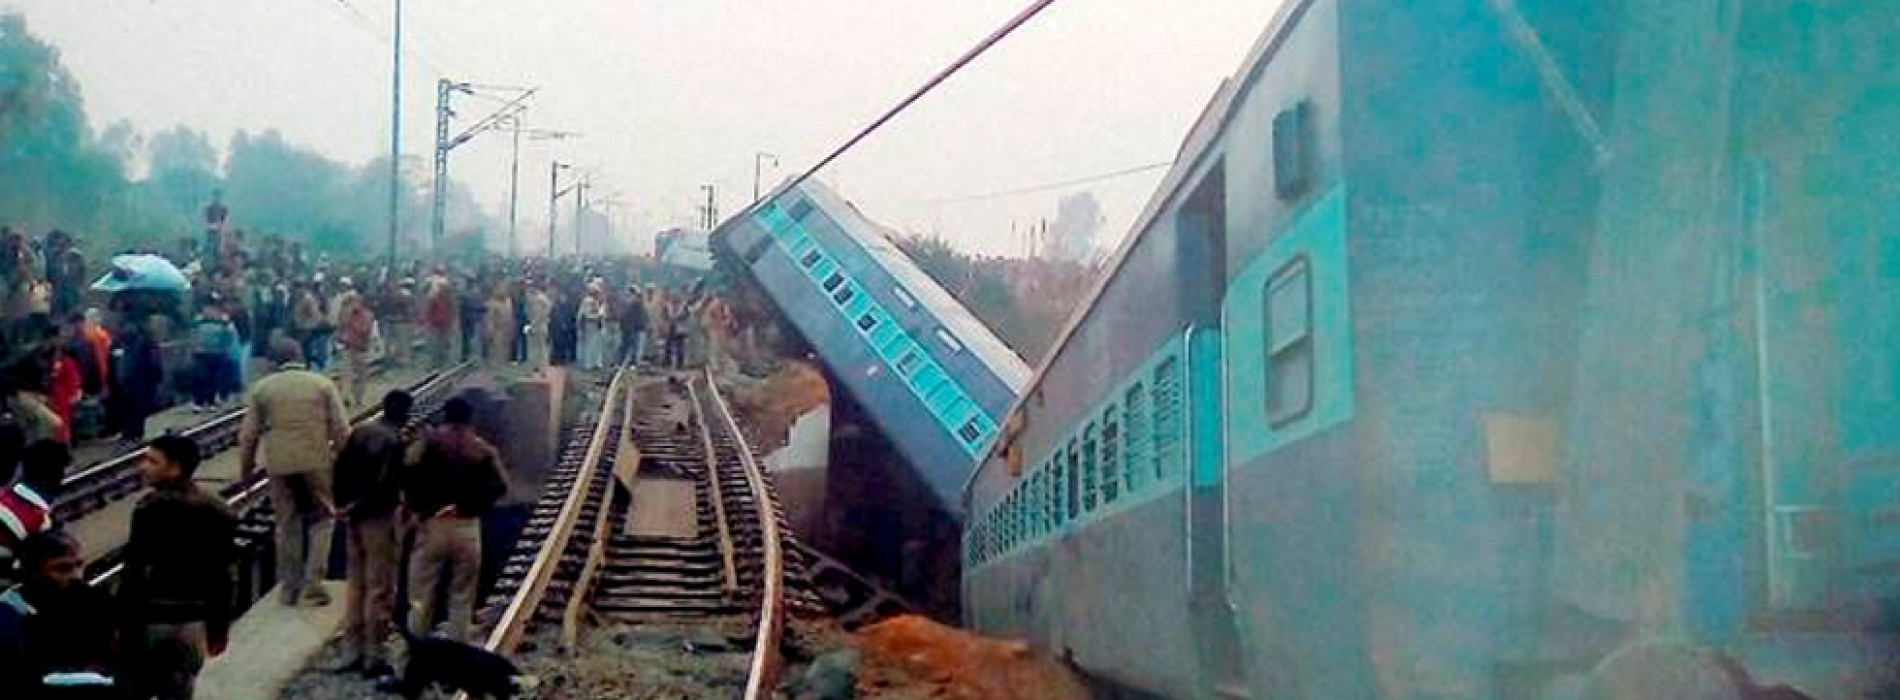 Kanpur train accident prime suspect and alleged ISI agent Samshul Hoda arrested in Nepal